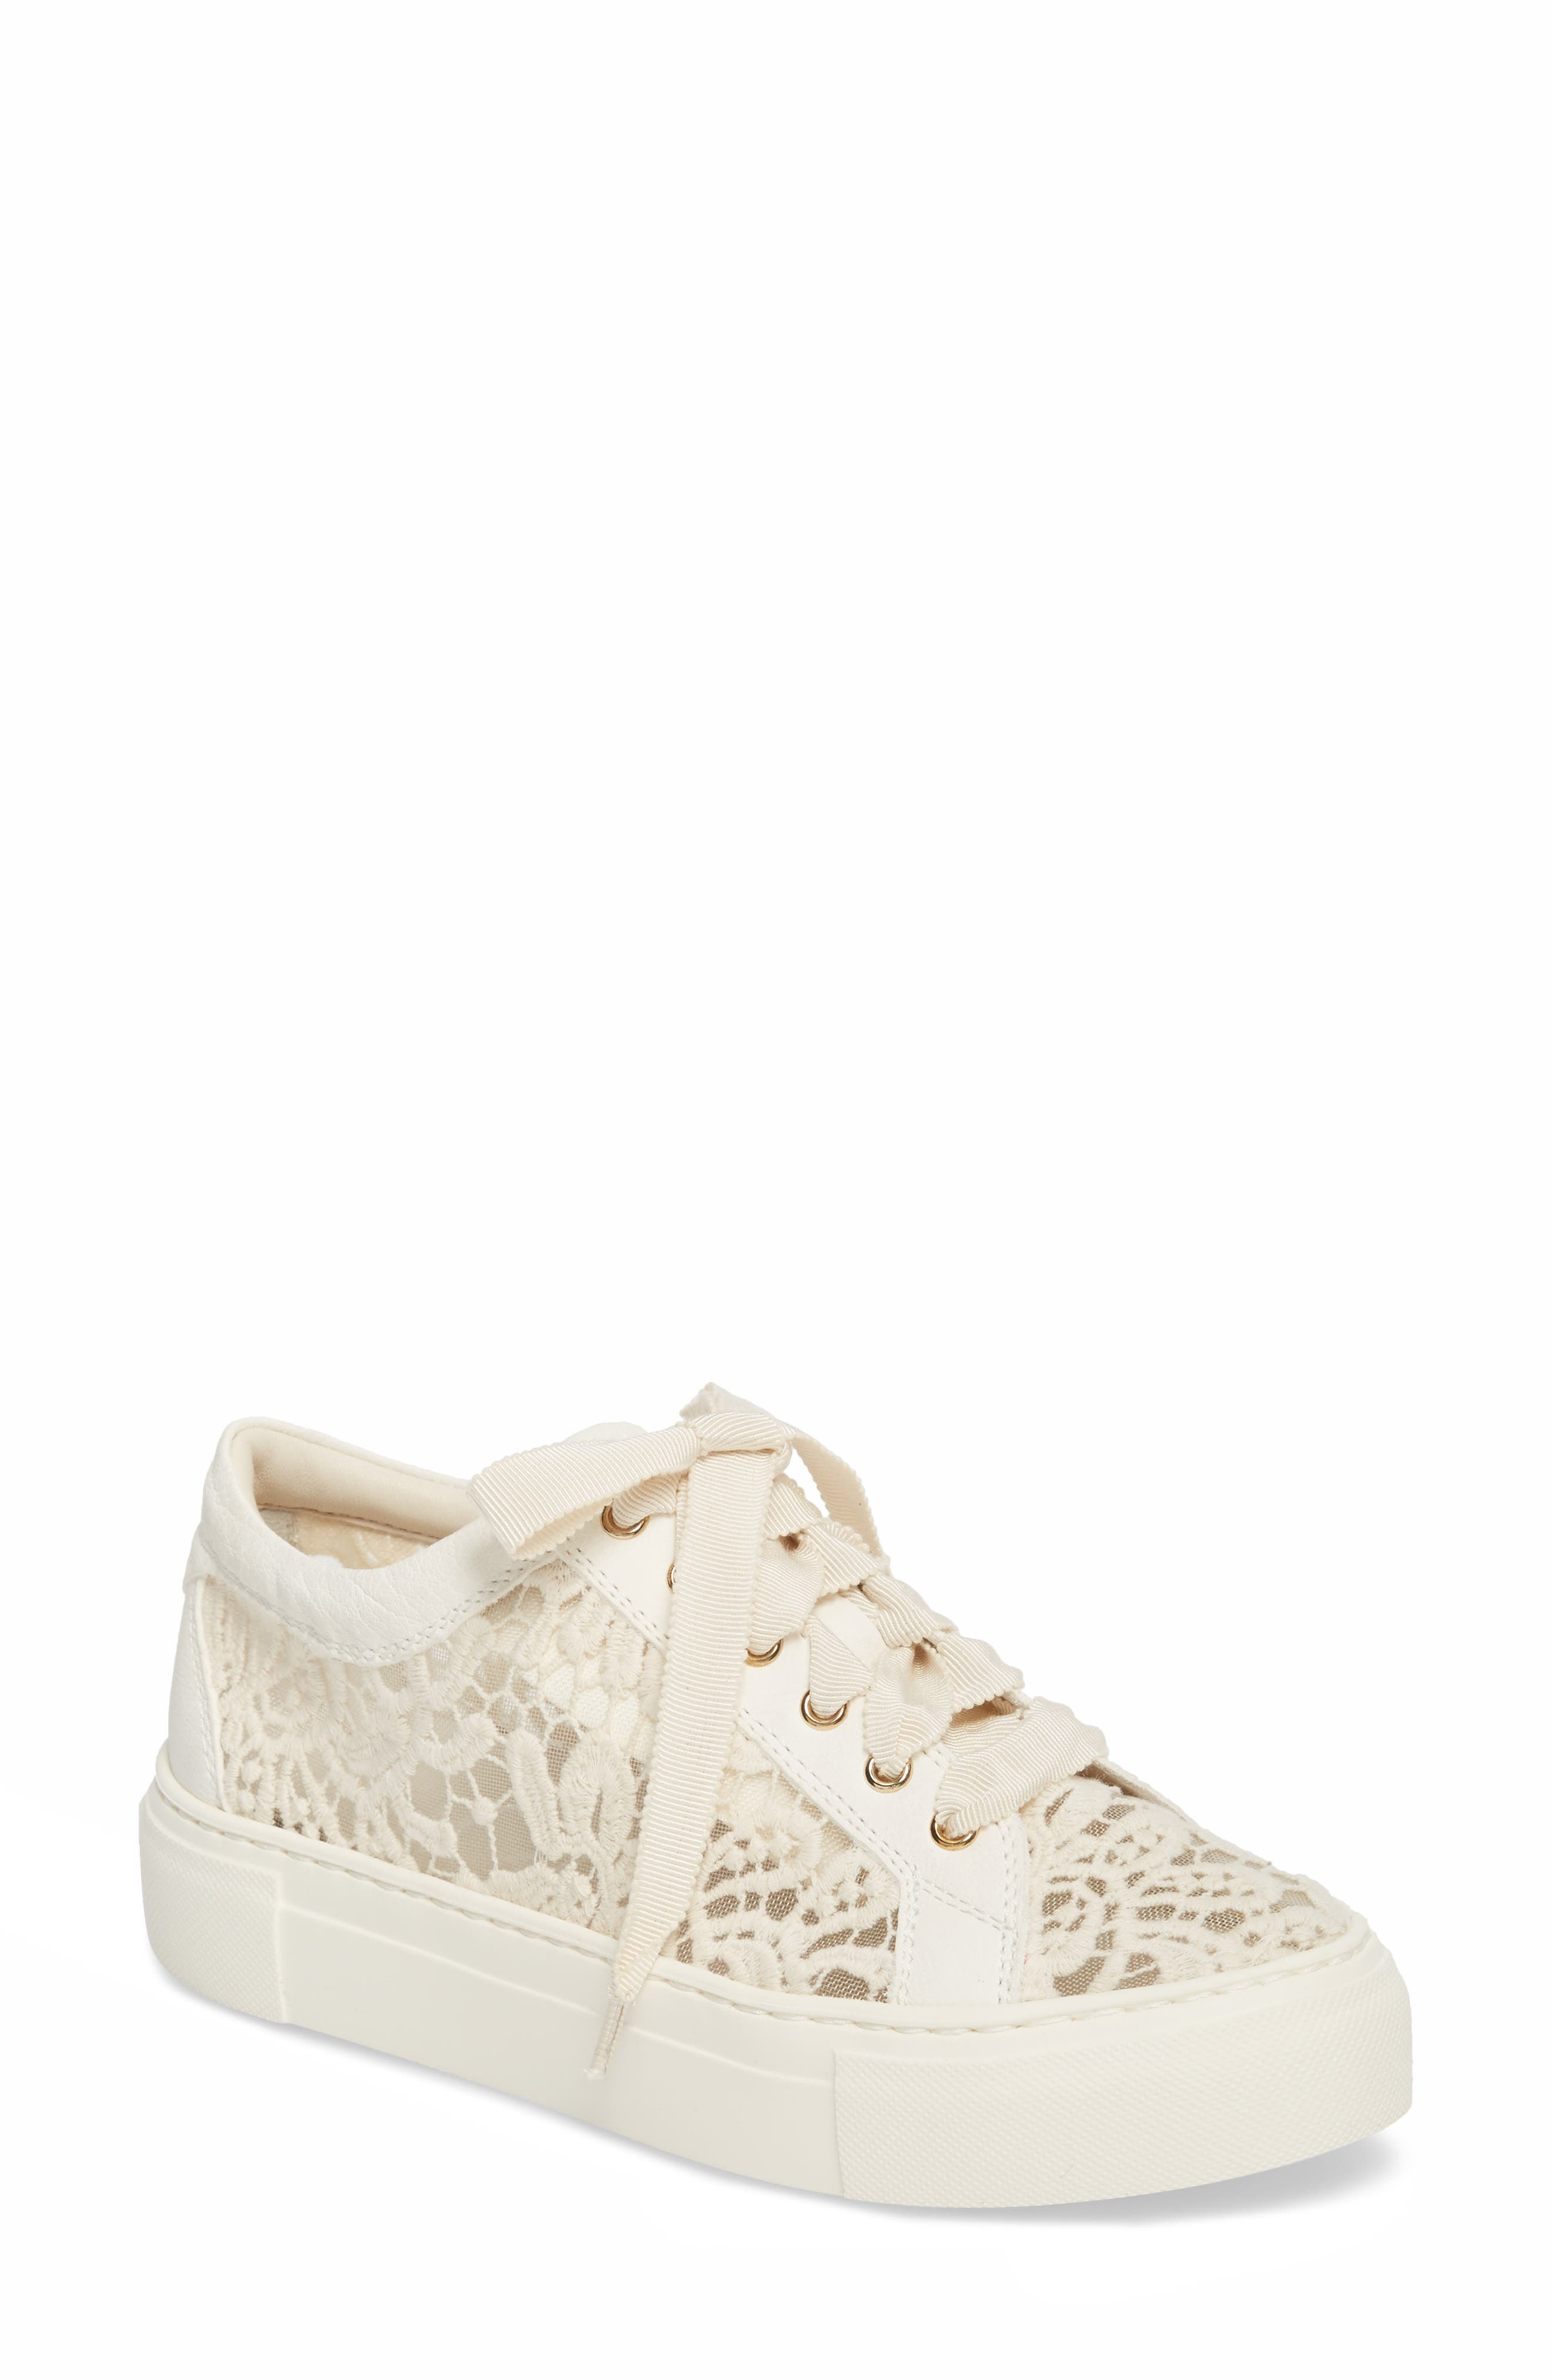 Embroidered Lace Sneaker,                             Main thumbnail 1, color,                             OFF WHITE LEATHER